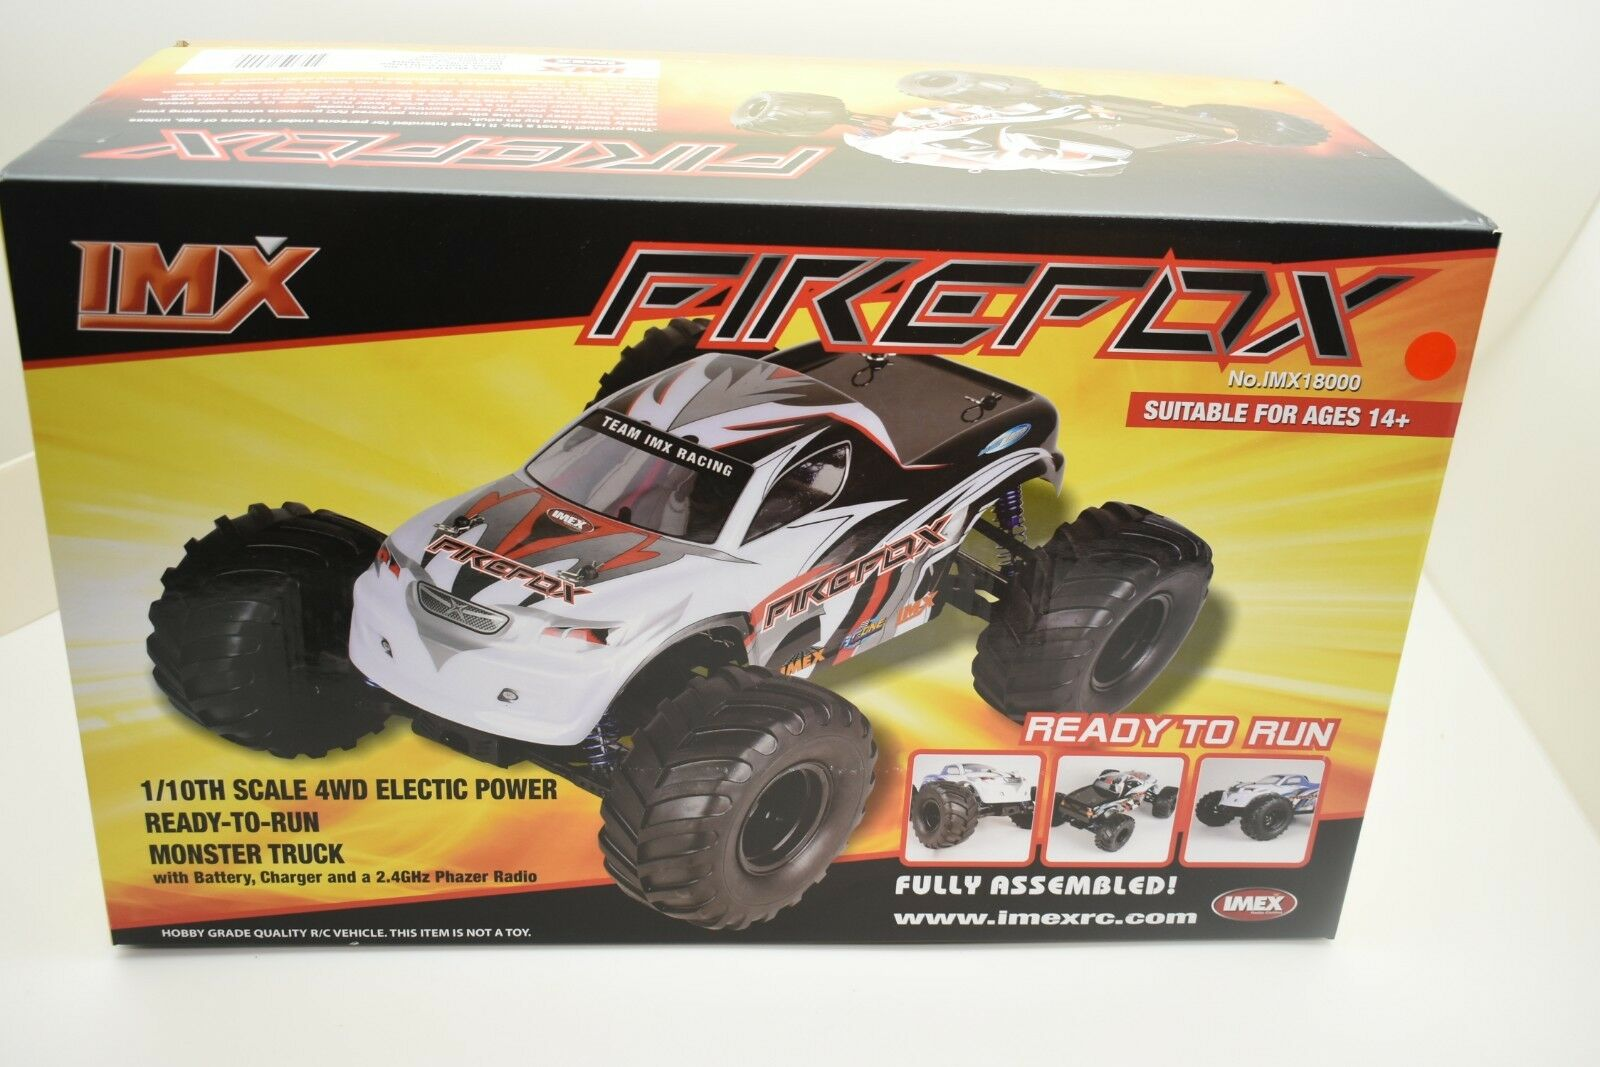 IMX 18000 FIREFOX 1 10TH SCALE 4WD ELECTRIC POWER GREAT STARTED CAR